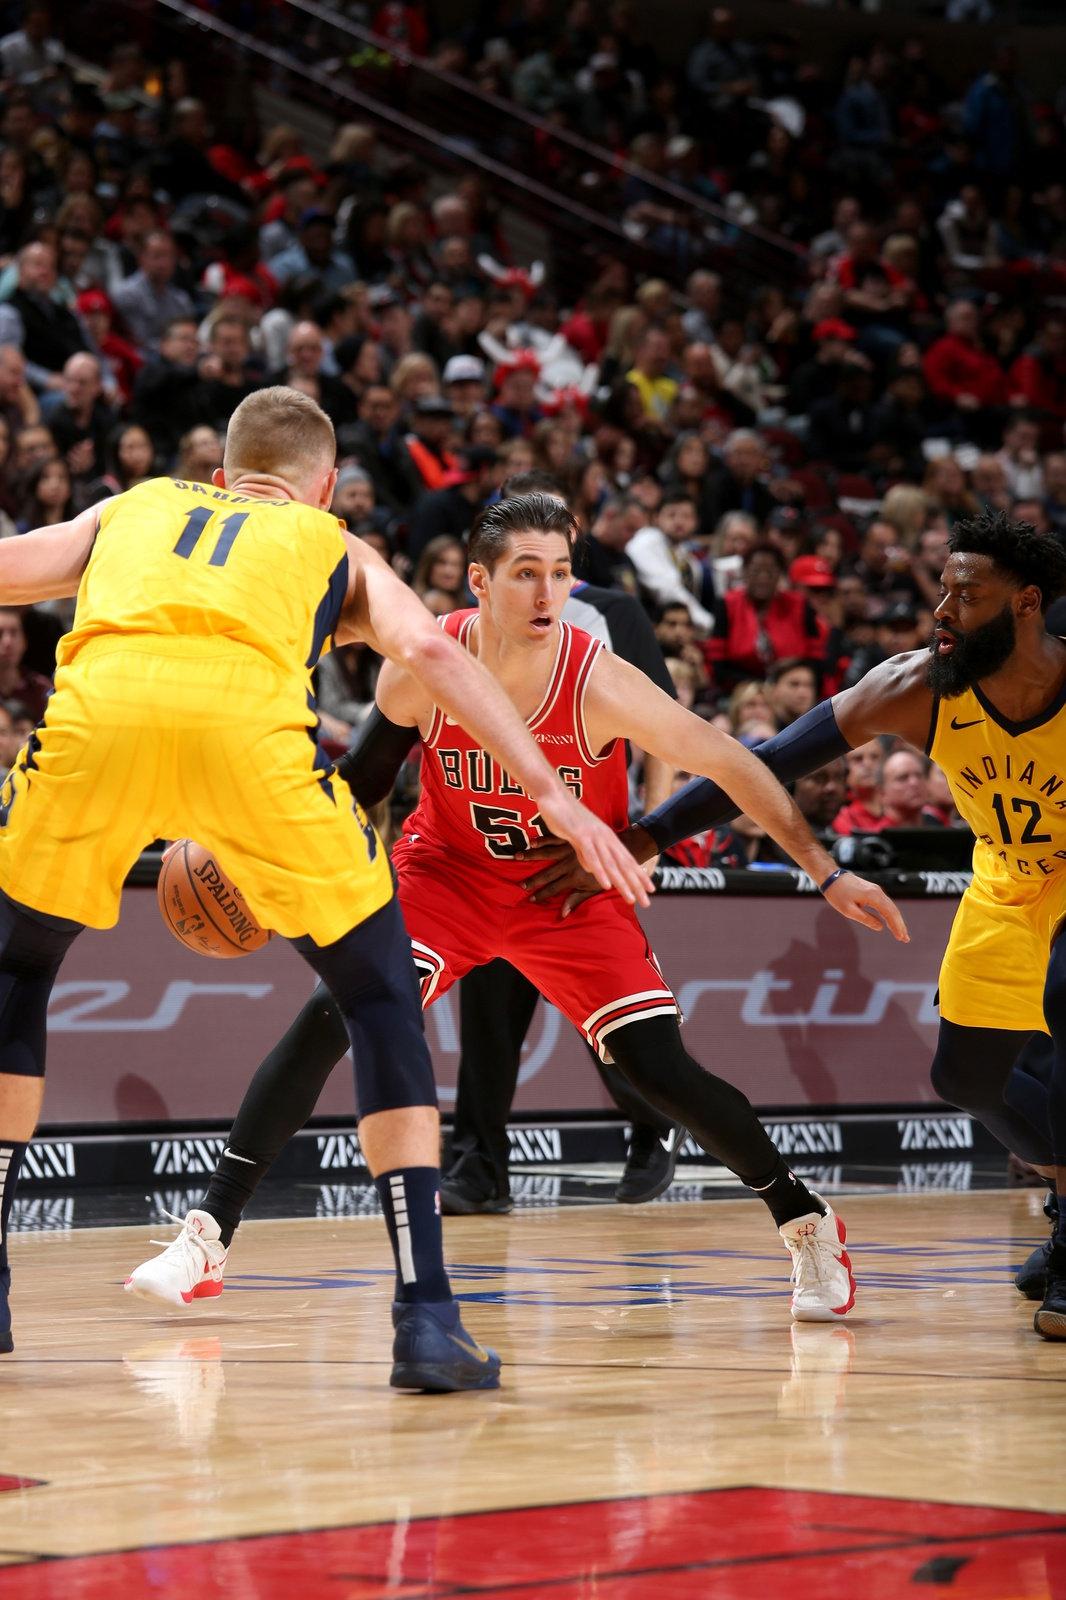 Ryan Arcidiacono #51 of the Chicago Bulls handles the ball against the Indiana Pacers on November 2, 2018 at the United Center in Chicago, Illinois.